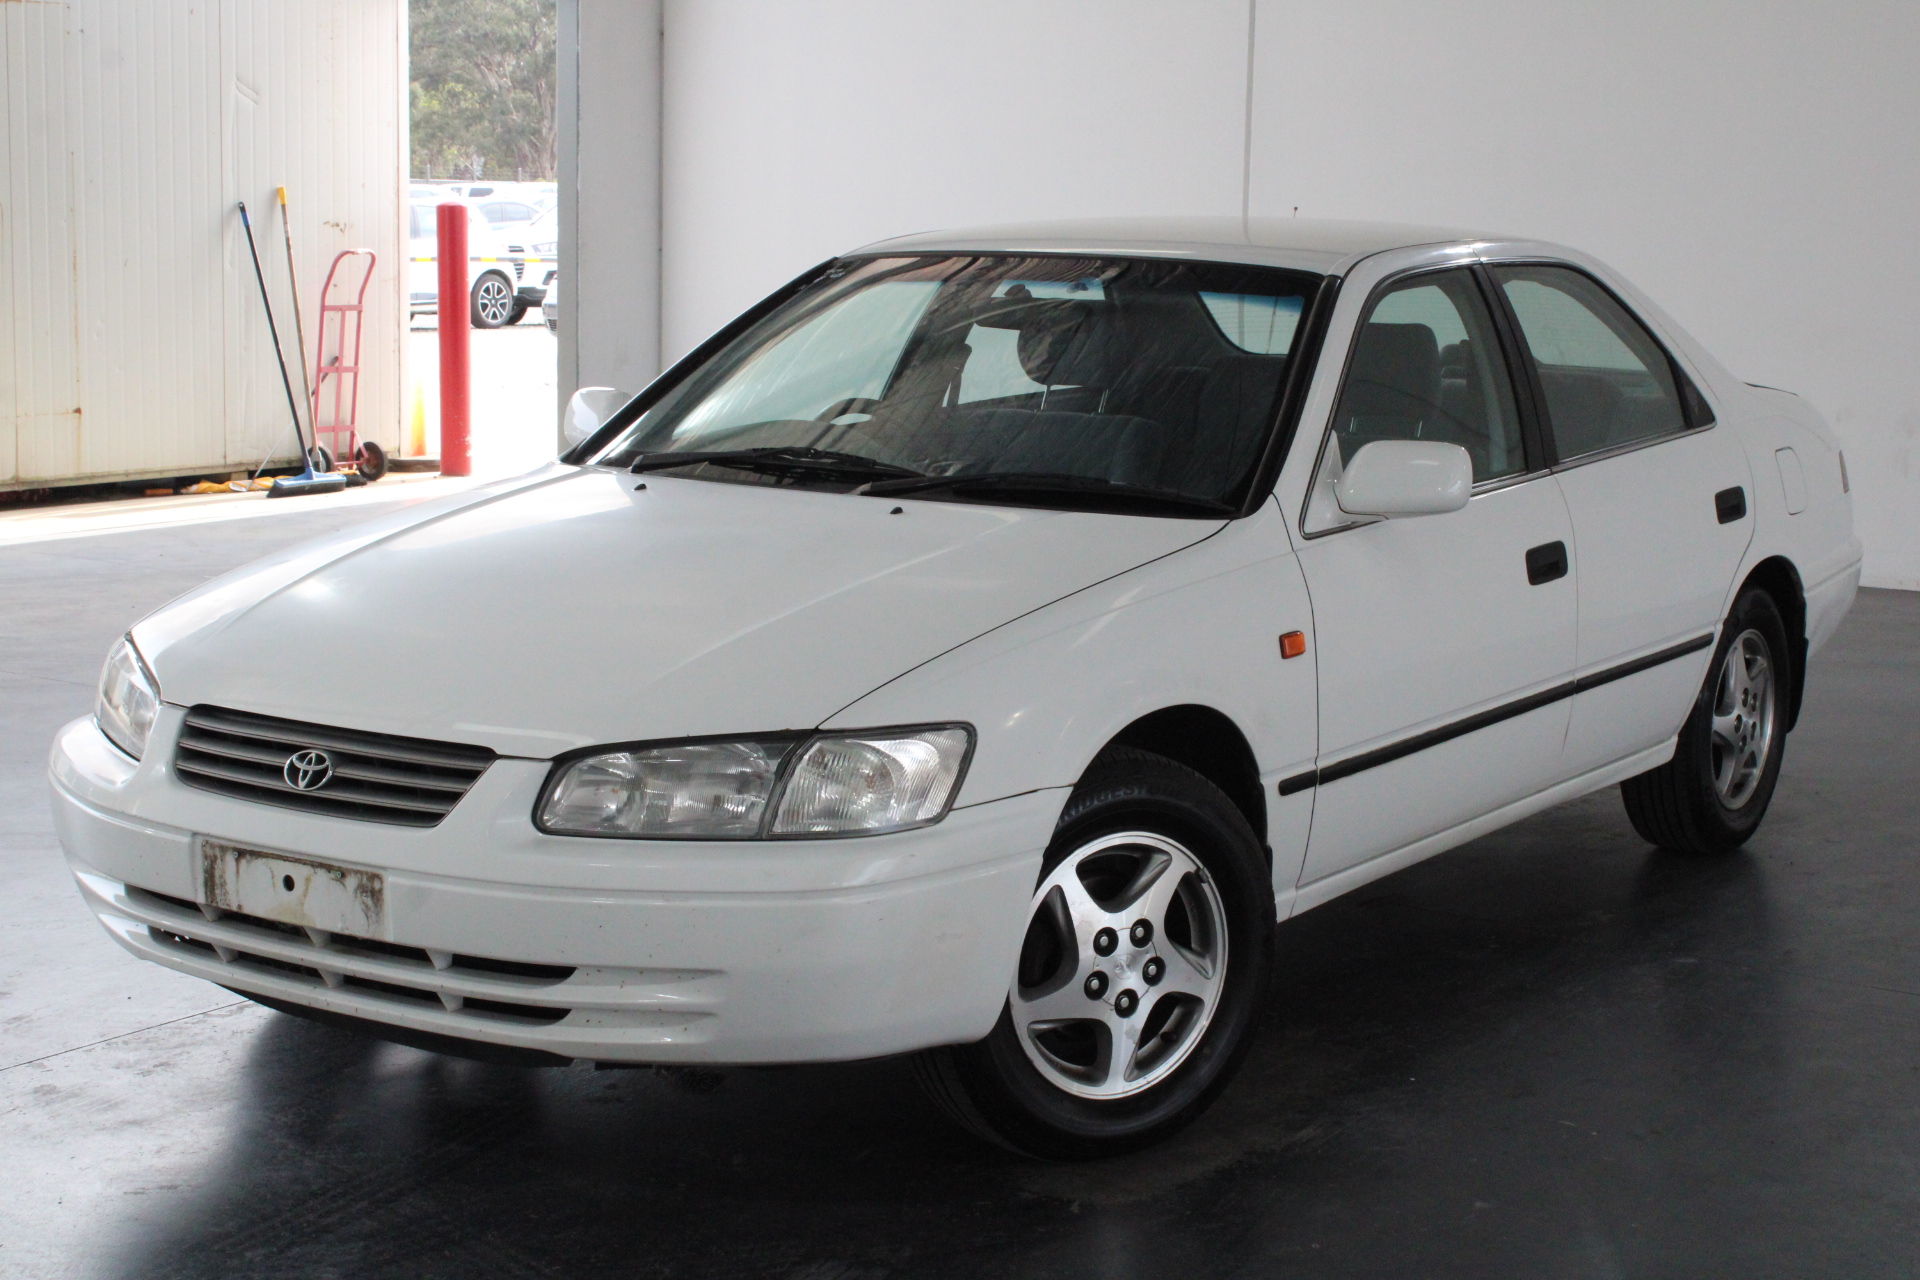 2000 Toyota Camry Conquest SXV20R Automatic Sedan